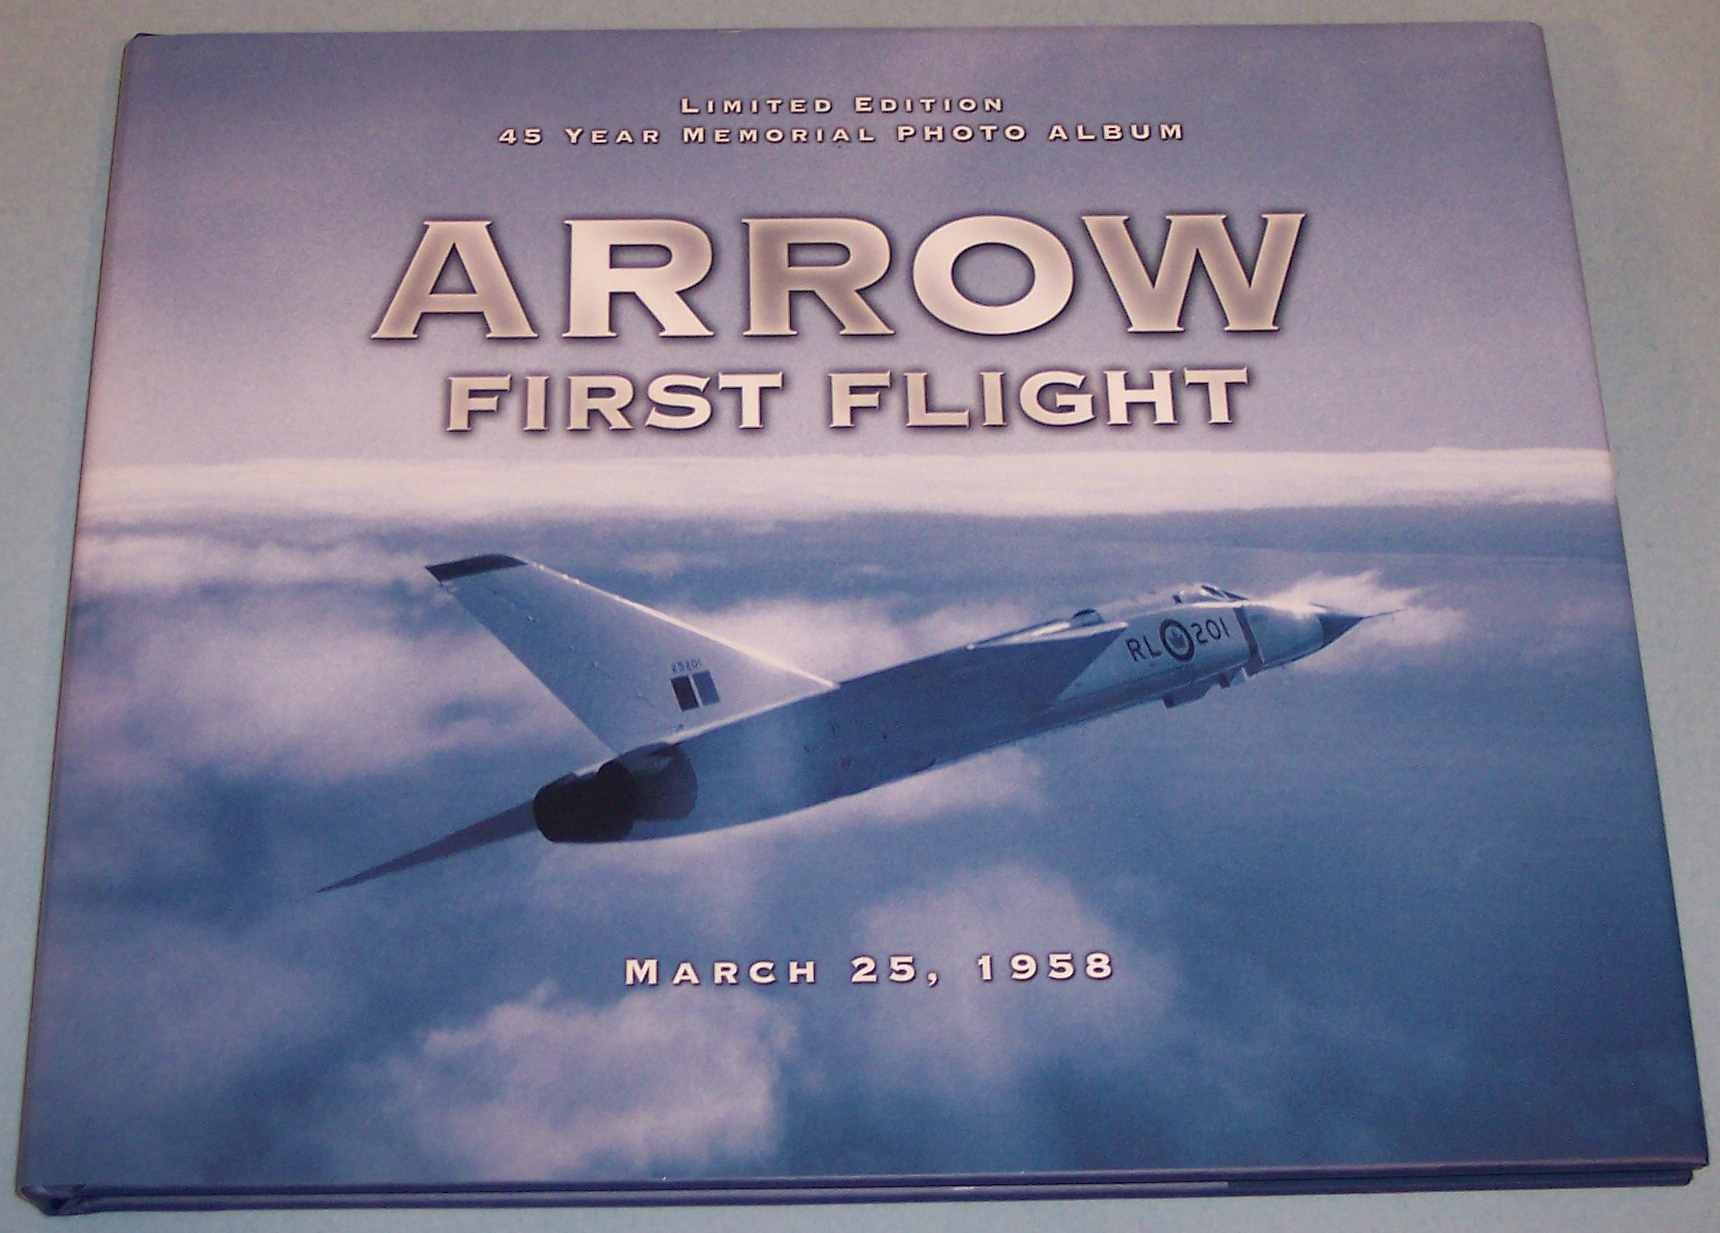 Image for Arrow First Flight, March 25, 1958 : 45 Year Memorial Photo Album